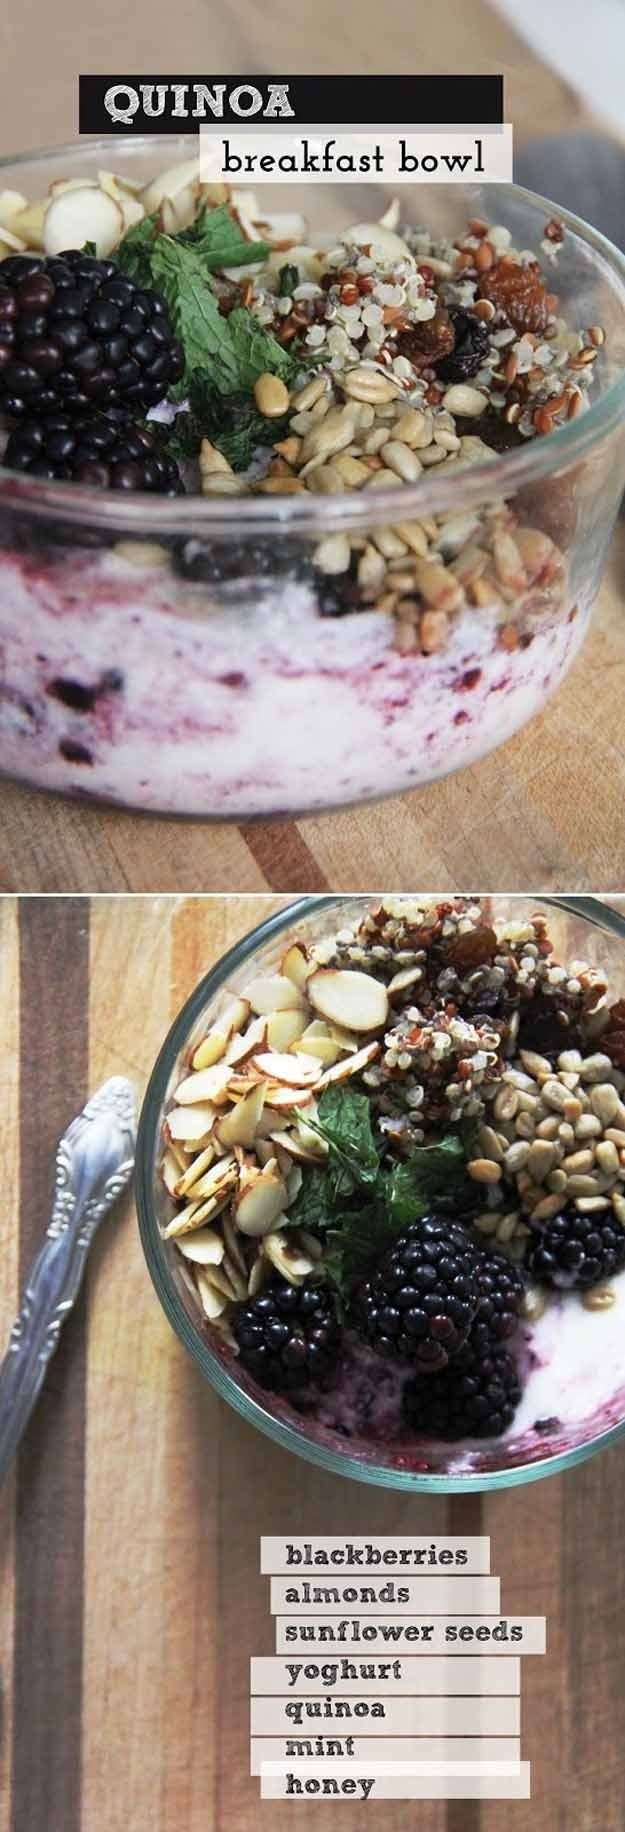 Quinoa Breakfast Bowl | 32 Ways To Eat Quinoa And Succeed In Life Soooo Many Choices!!! where do I start...